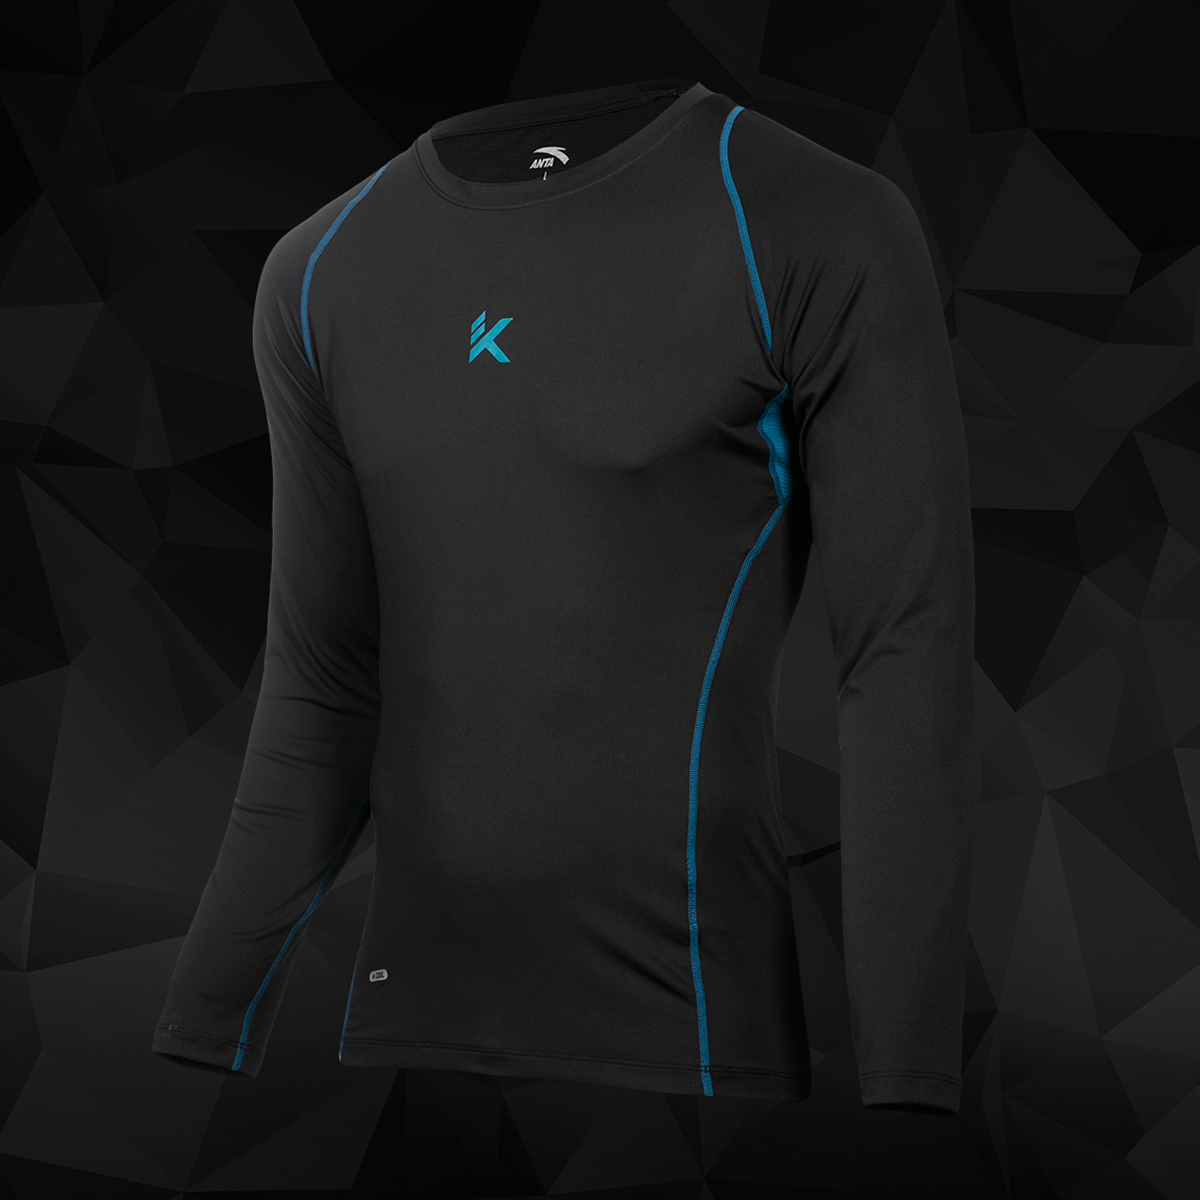 ANTA KT Long Sleeve Compression T-Shirt